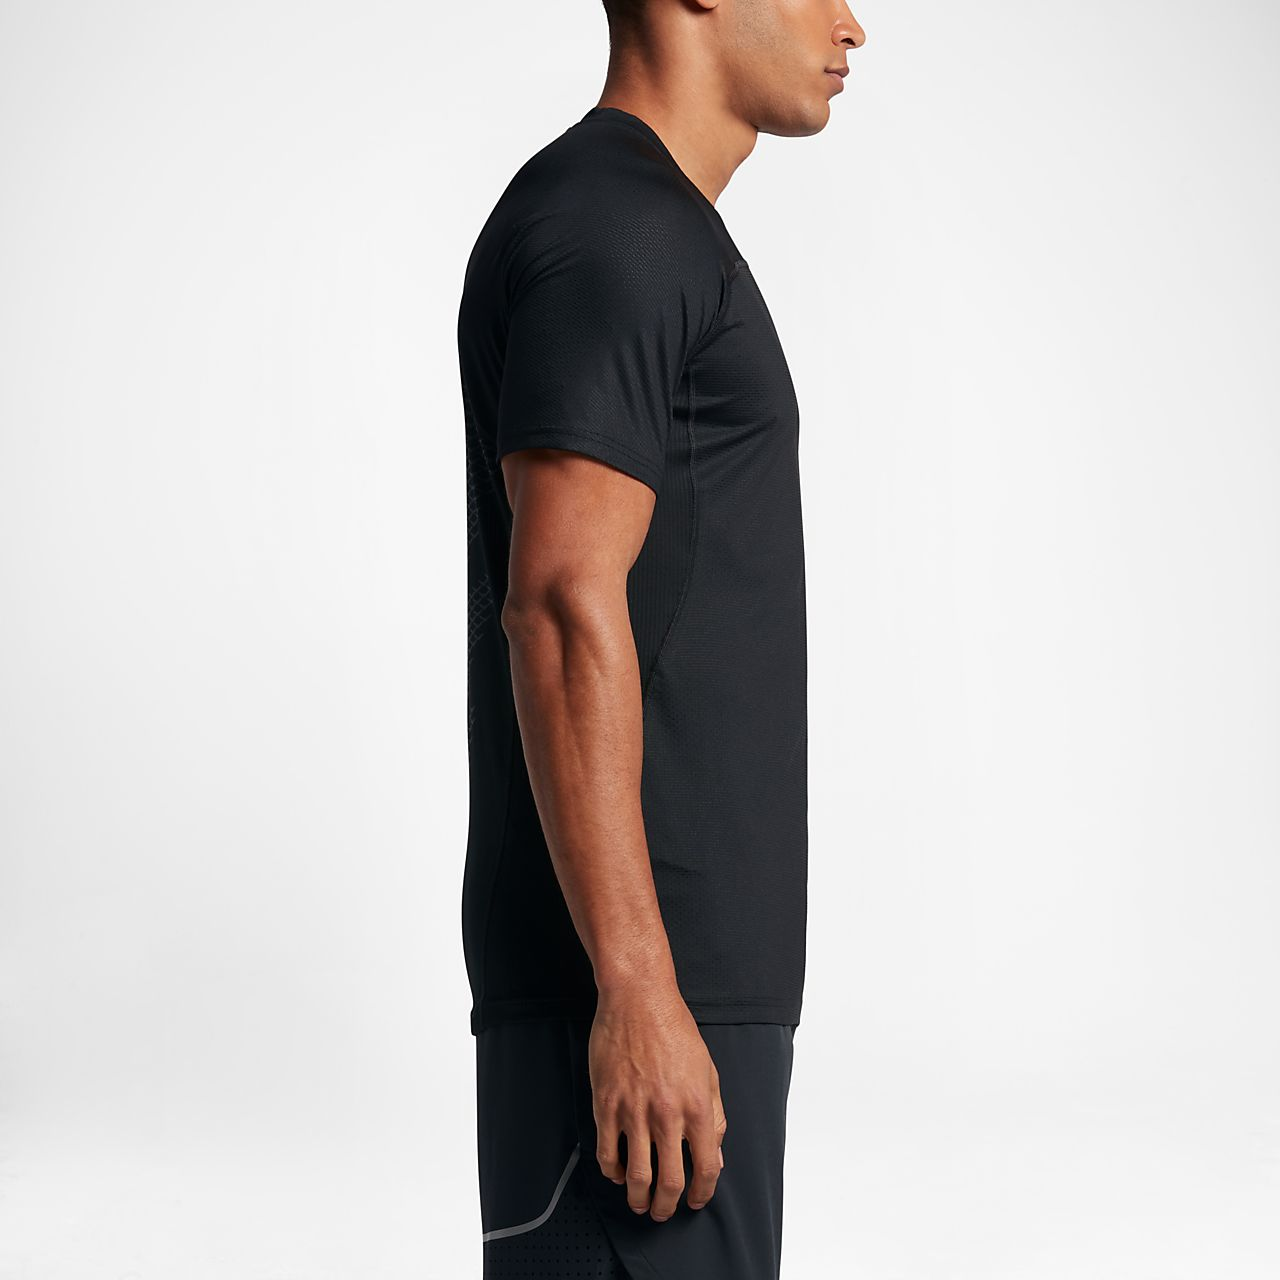 034e6cb253 Nike Pro HyperCool Men's Short-Sleeve Top. Nike.com GB